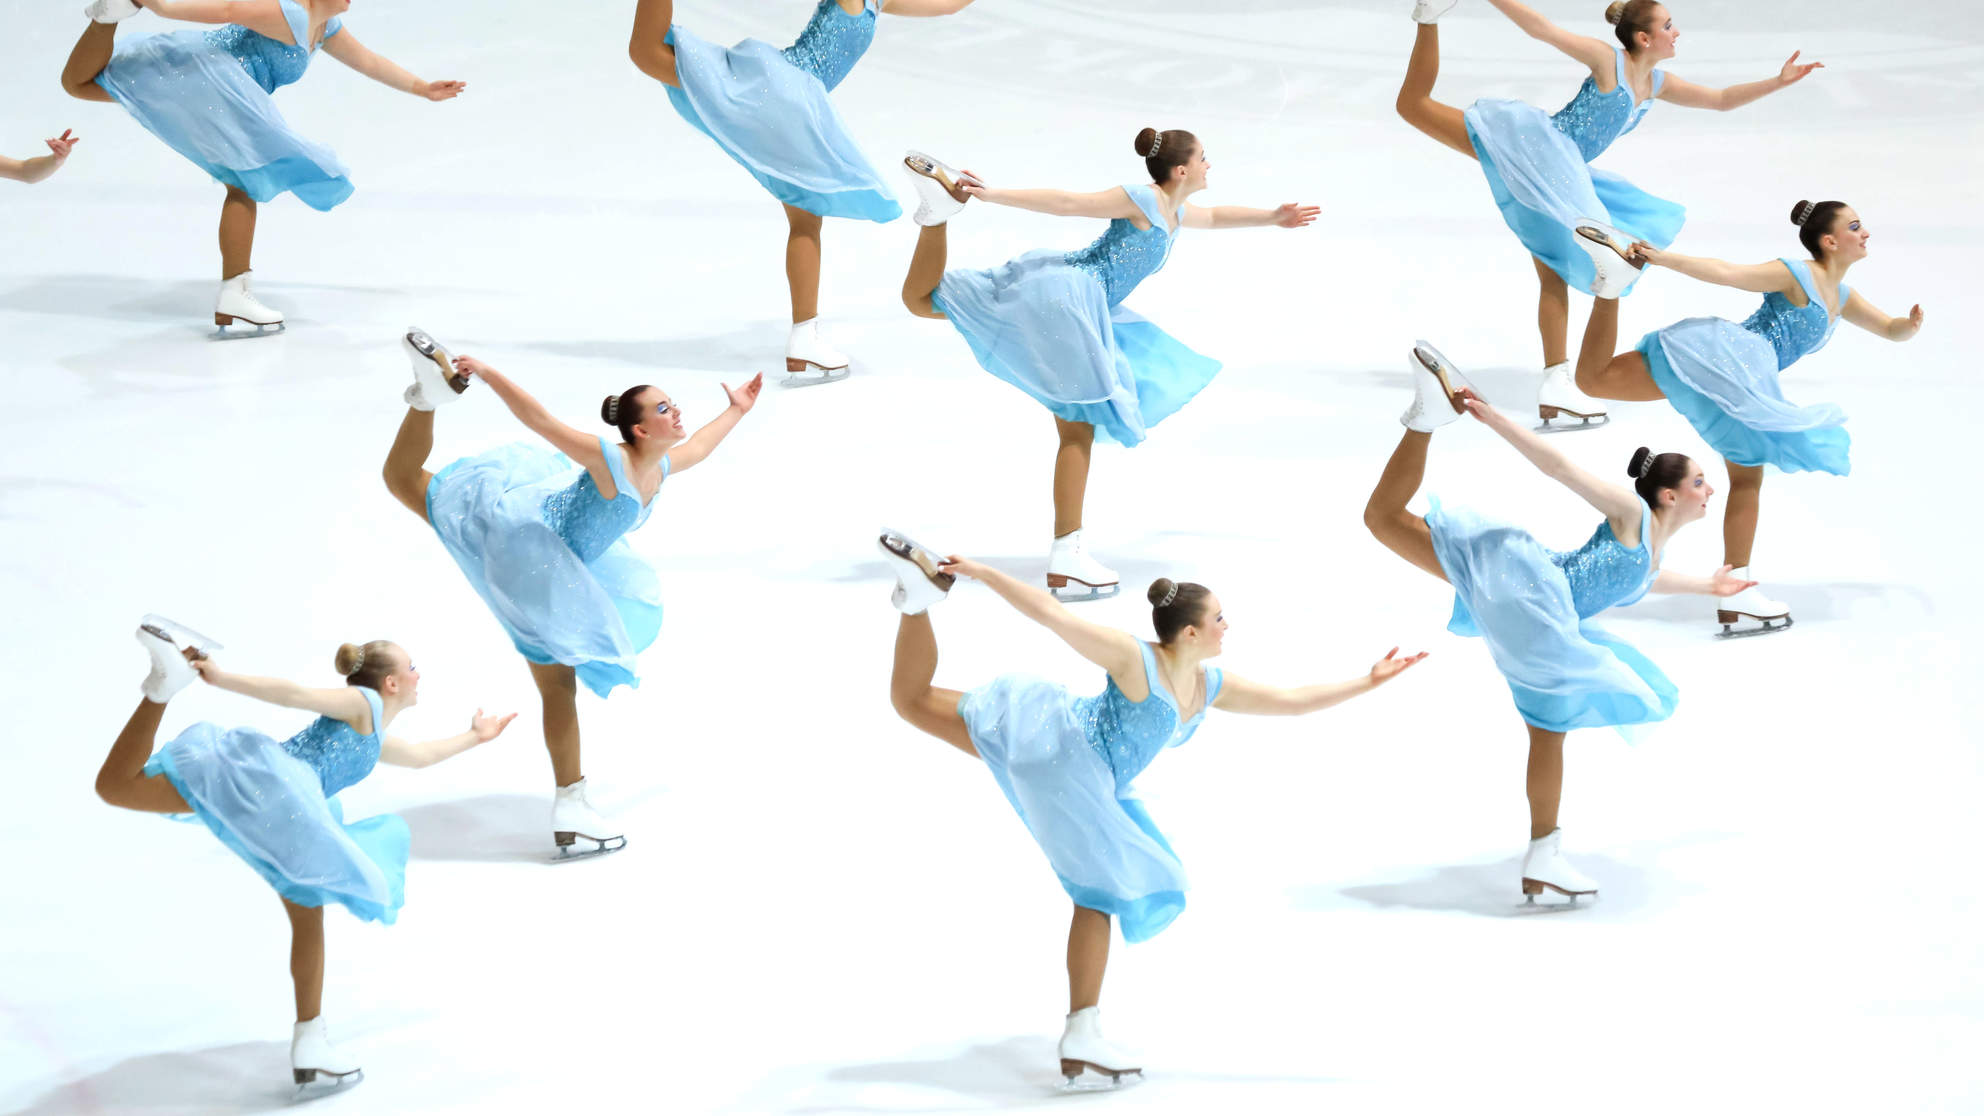 Get to Know the Figure Skating Sport That's So Wild, It Isn't Even in the Olympics Yet